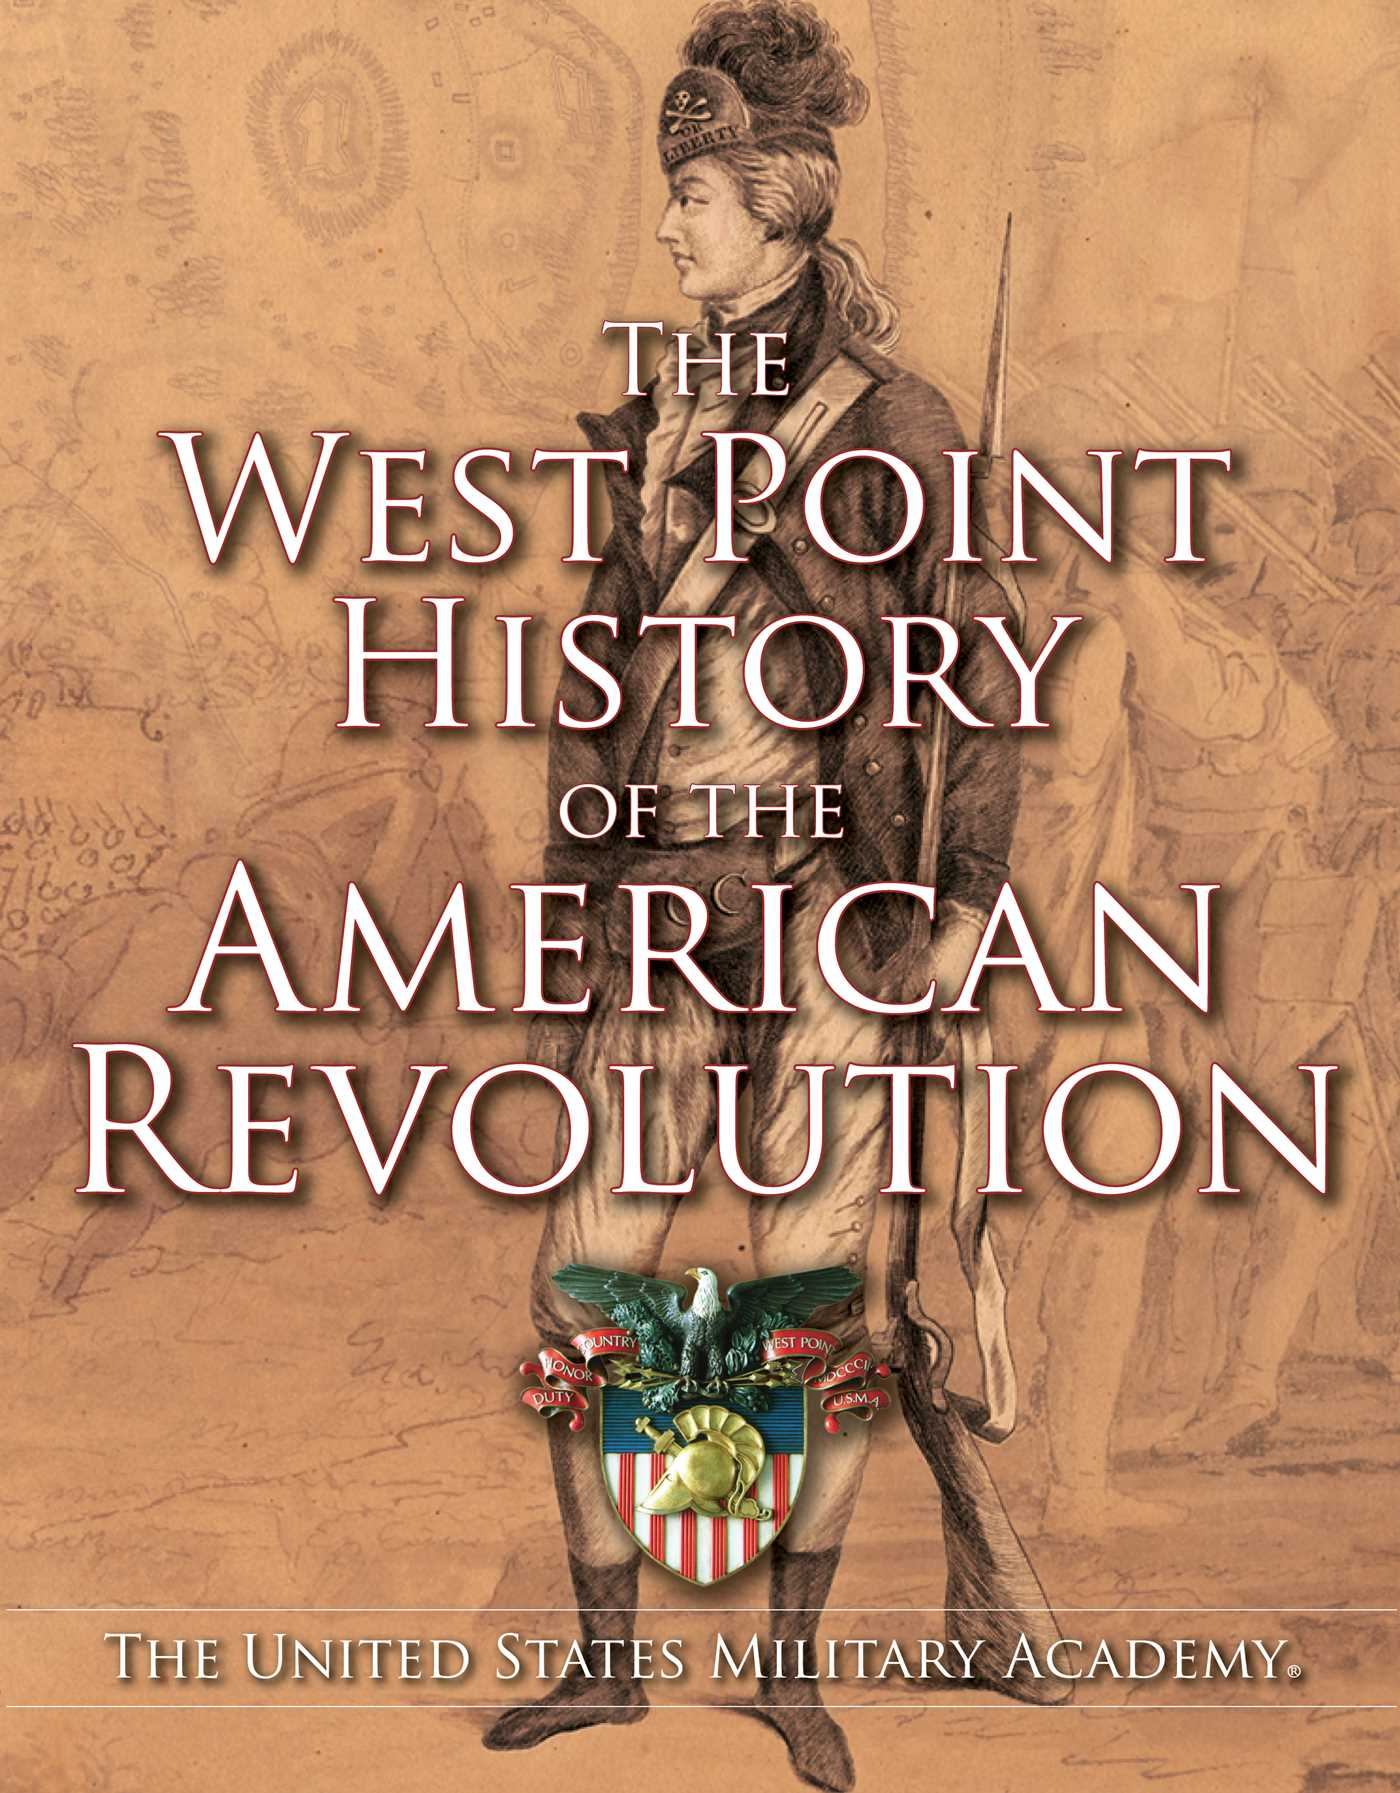 West point history of the american revolution 9781476782751 hr